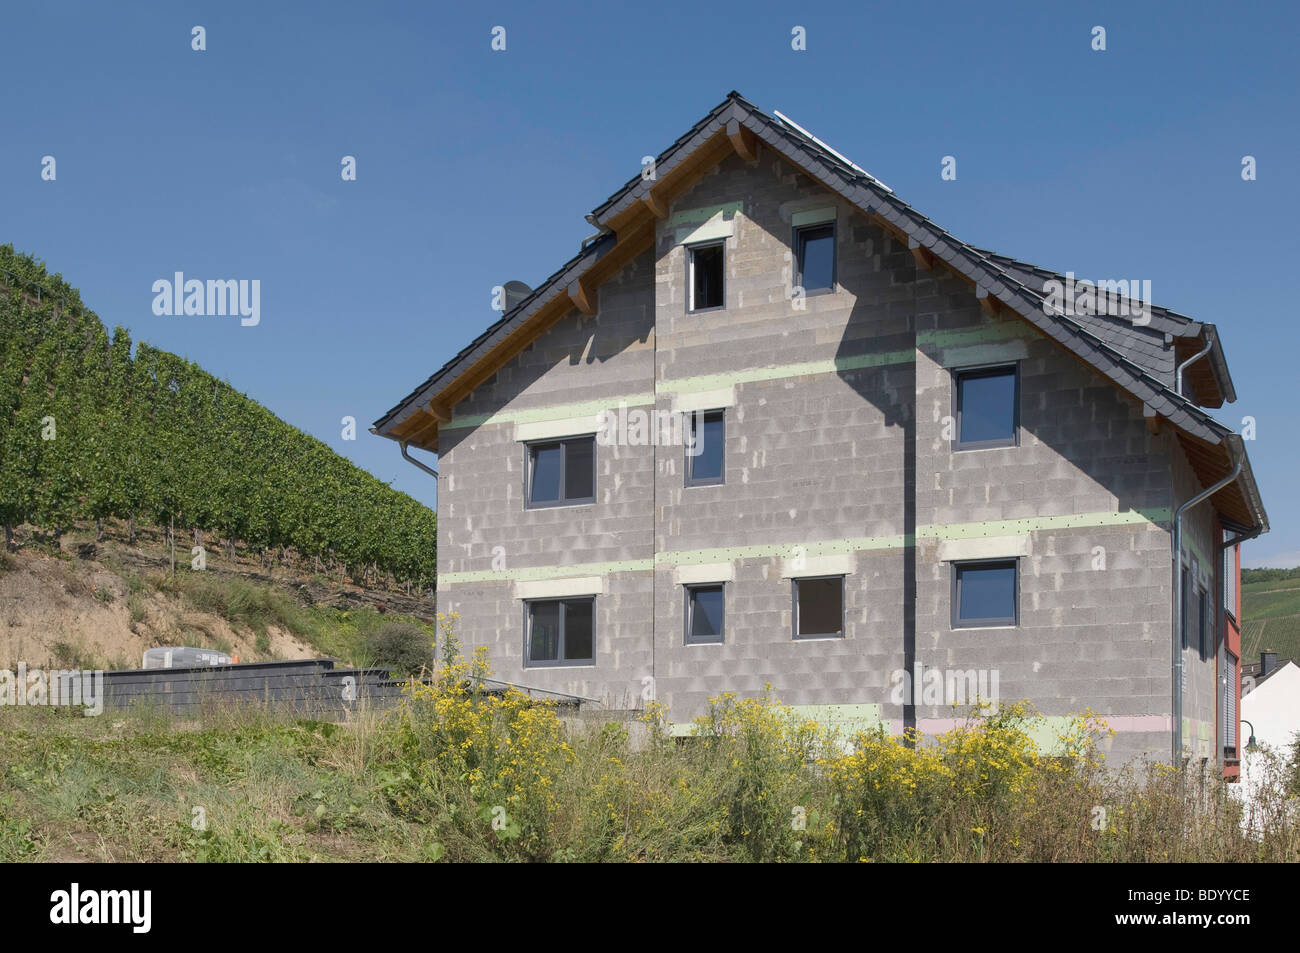 Apartment building under construction, bare brickwork in front of other homes, Rhineland-Palatinate, Germany, Europe - Stock Image